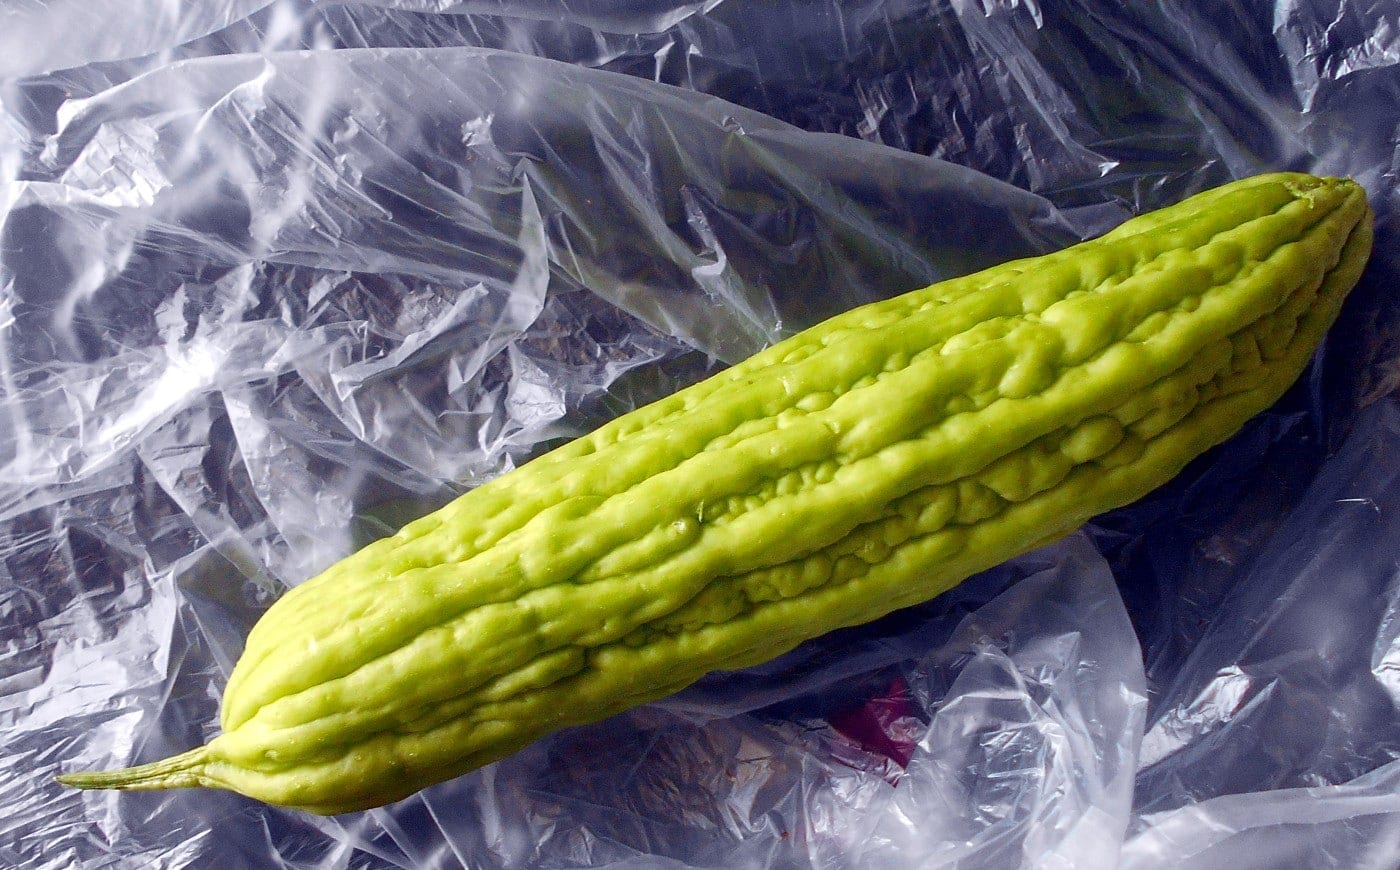 Overhead view of a whole chinese bitter gourd on a plastic bag - Bow-tie Stir Fry